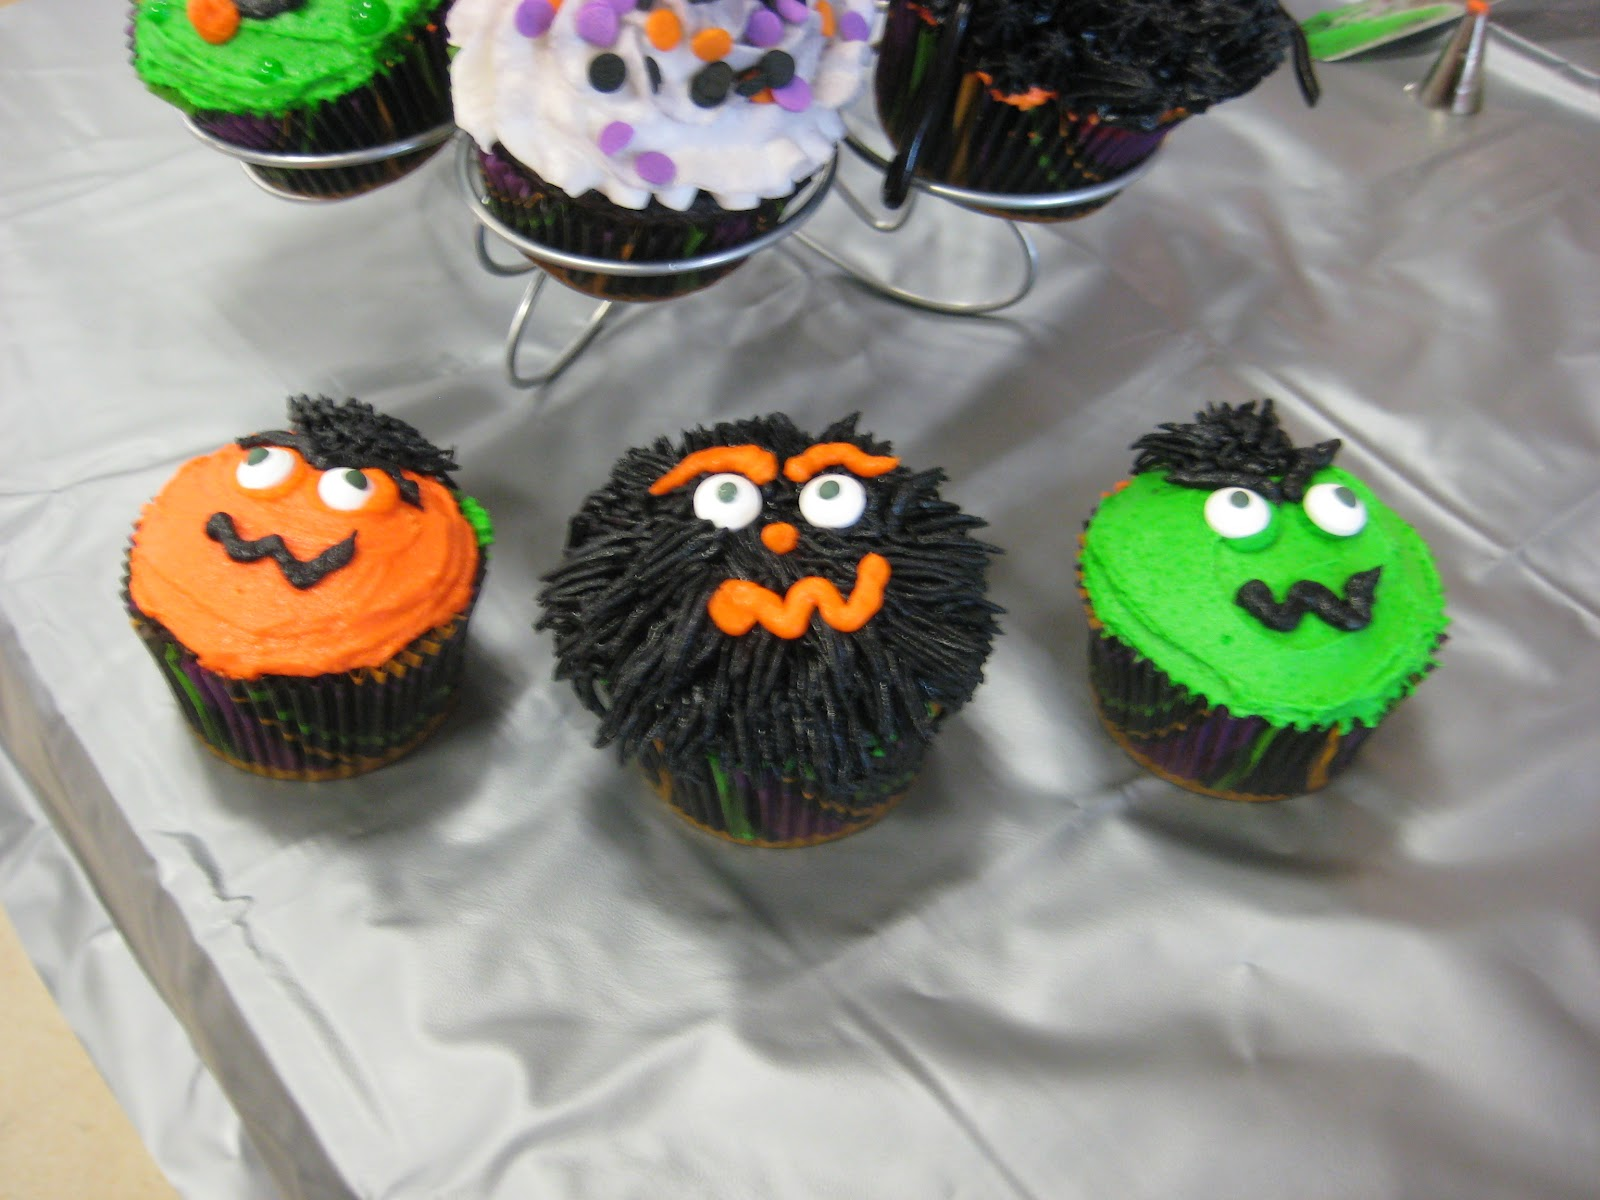 Halloween Cupcake Cake Decorating Ideas : Fun with Cake Decorating!: Here are some Halloween Cupcake ...